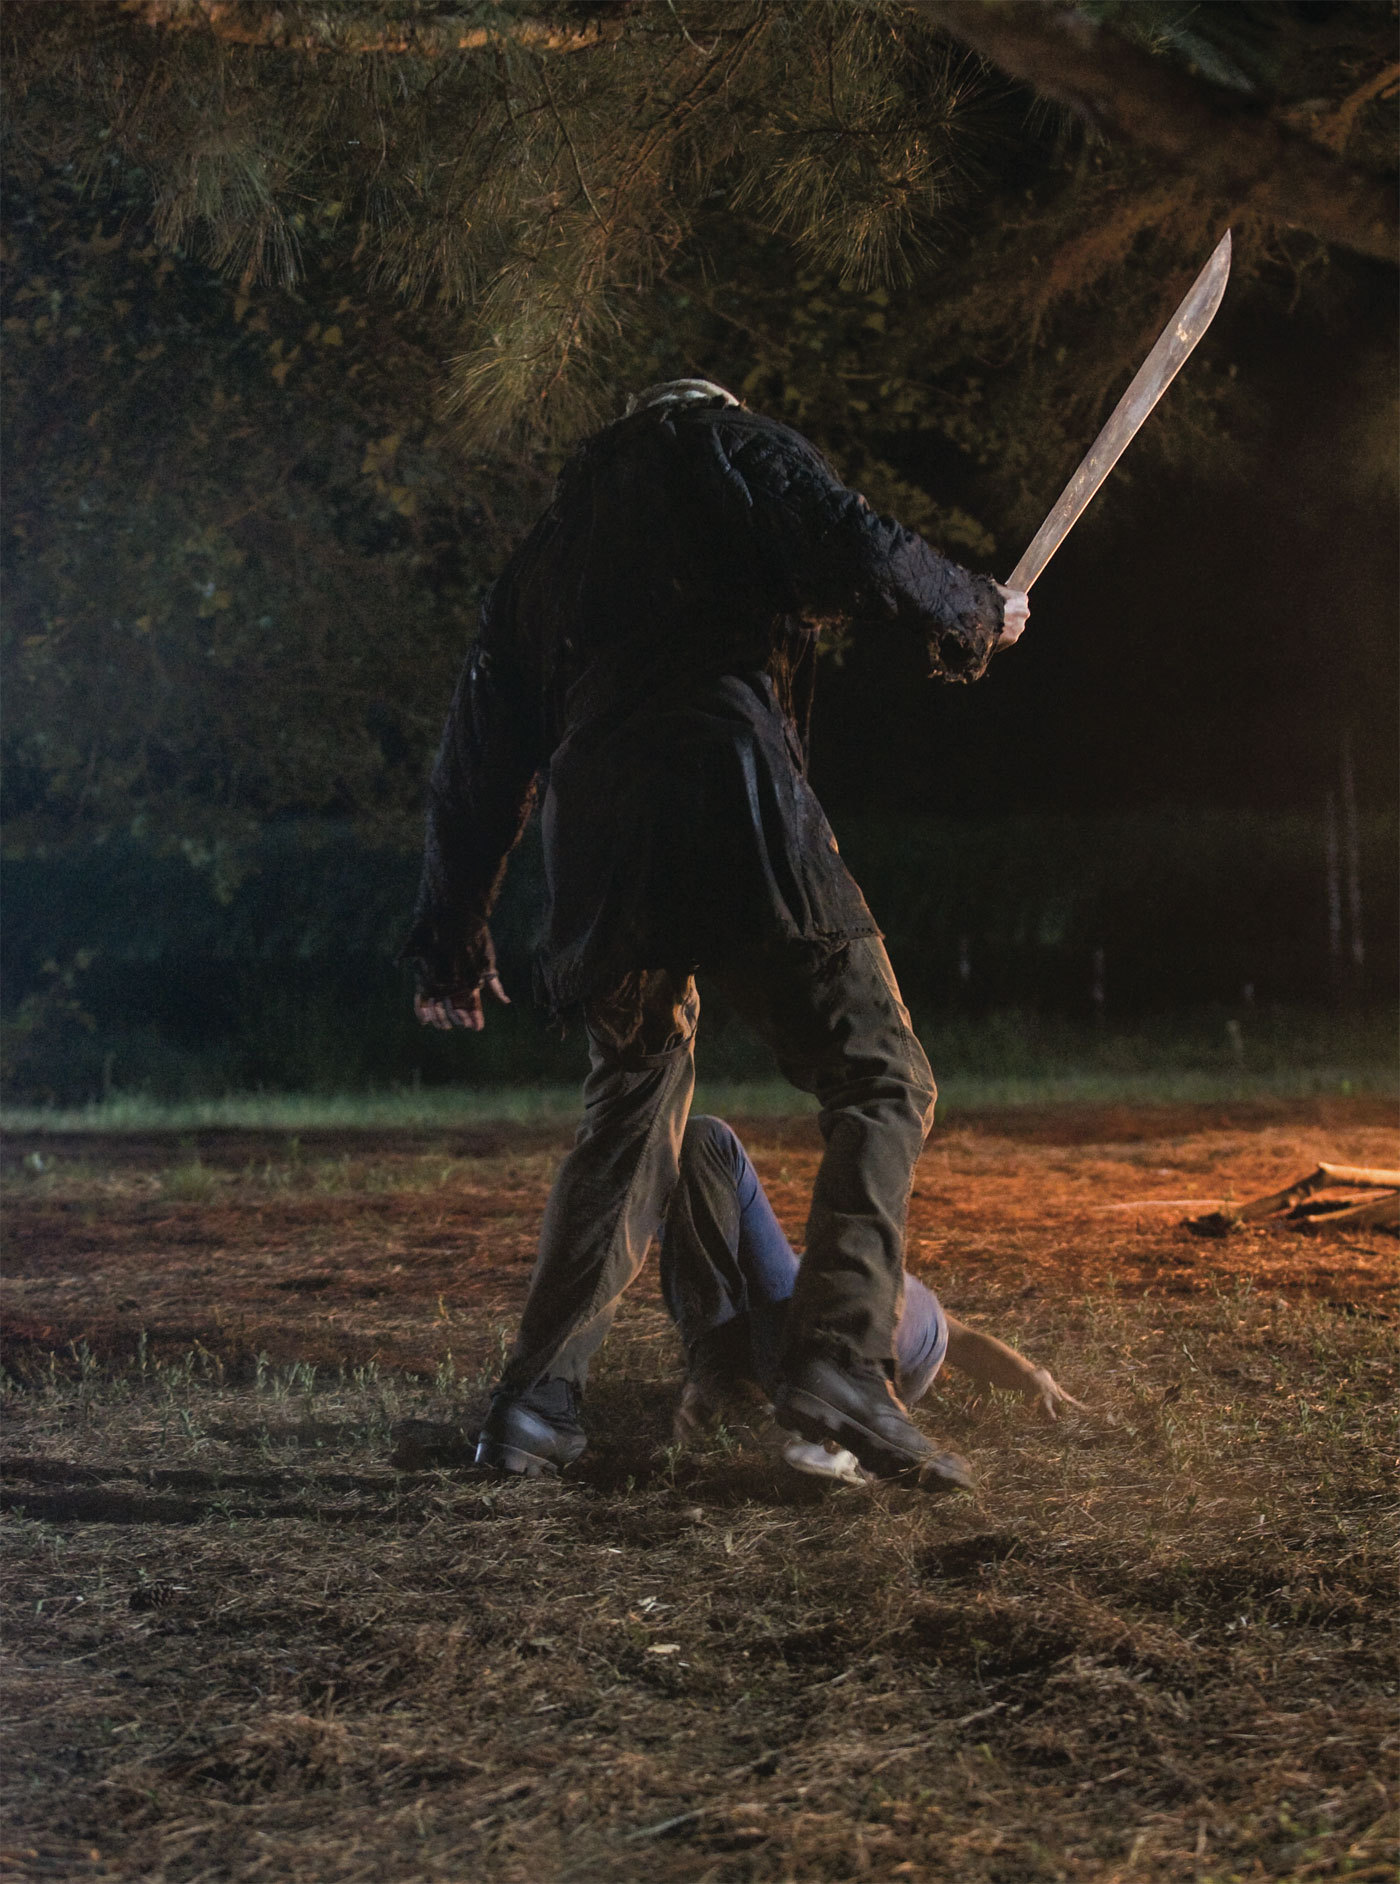 Friday the 13th (2009)